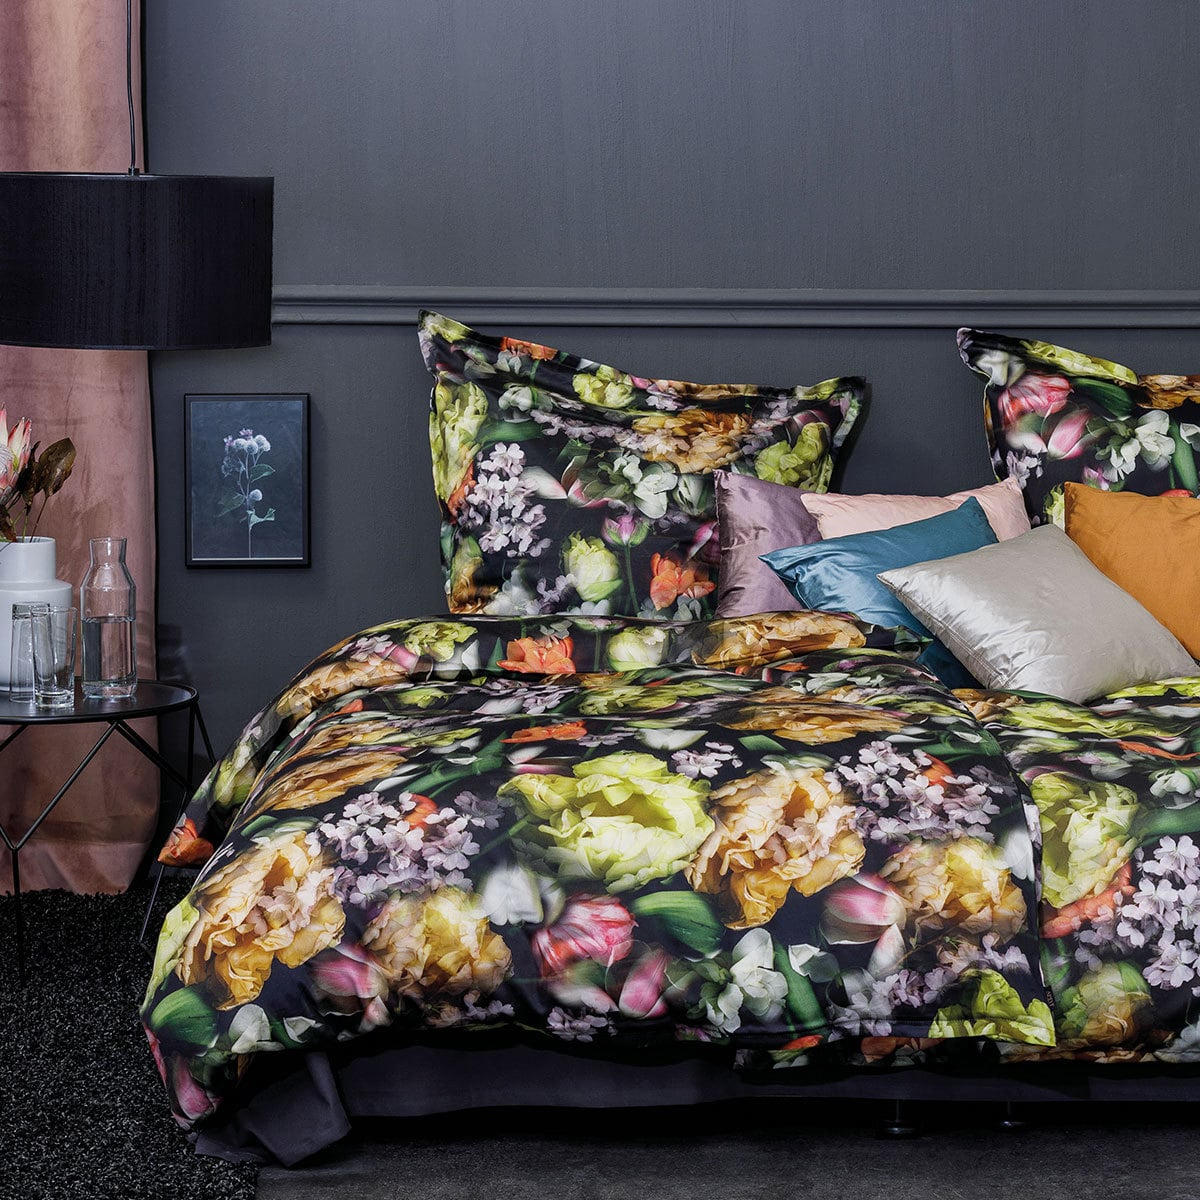 apelt mako satin bettw sche emily g nstig online kaufen. Black Bedroom Furniture Sets. Home Design Ideas